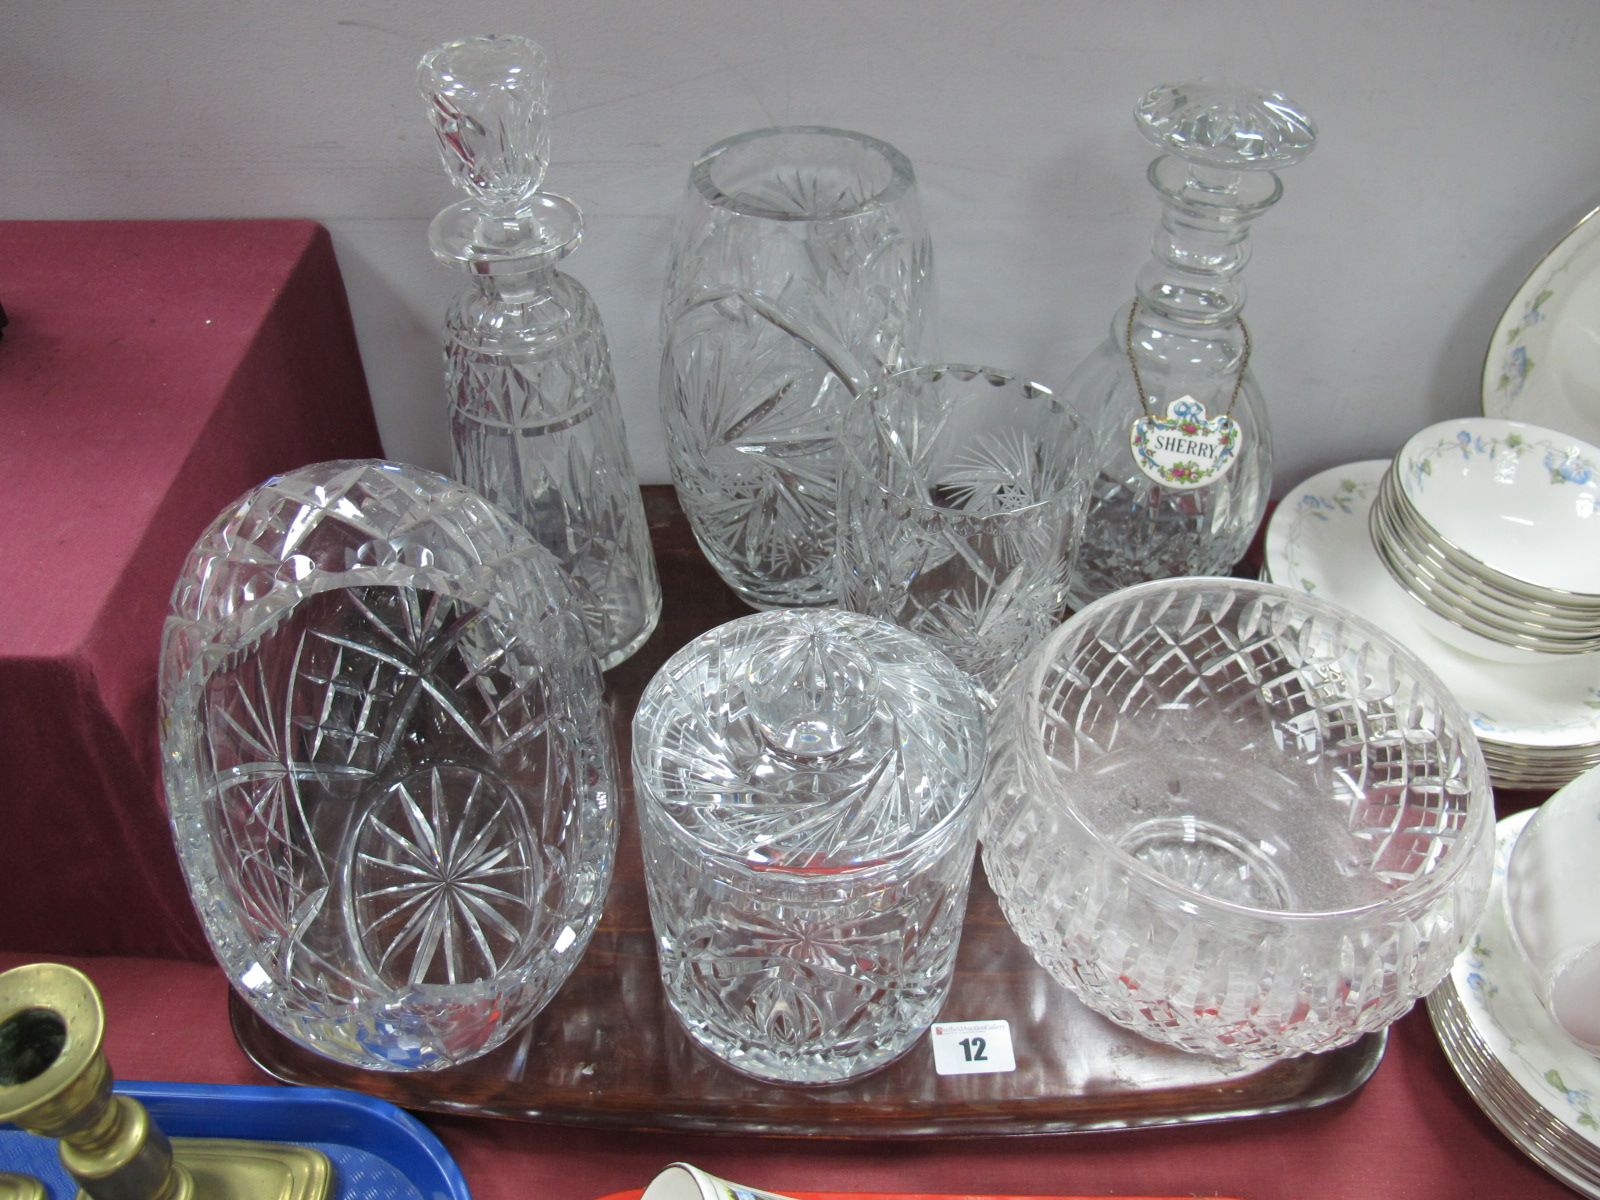 Lot 12 - Two Glass Decanters, biscuit barrel, vases, basket, fruit bowl:- One Tray